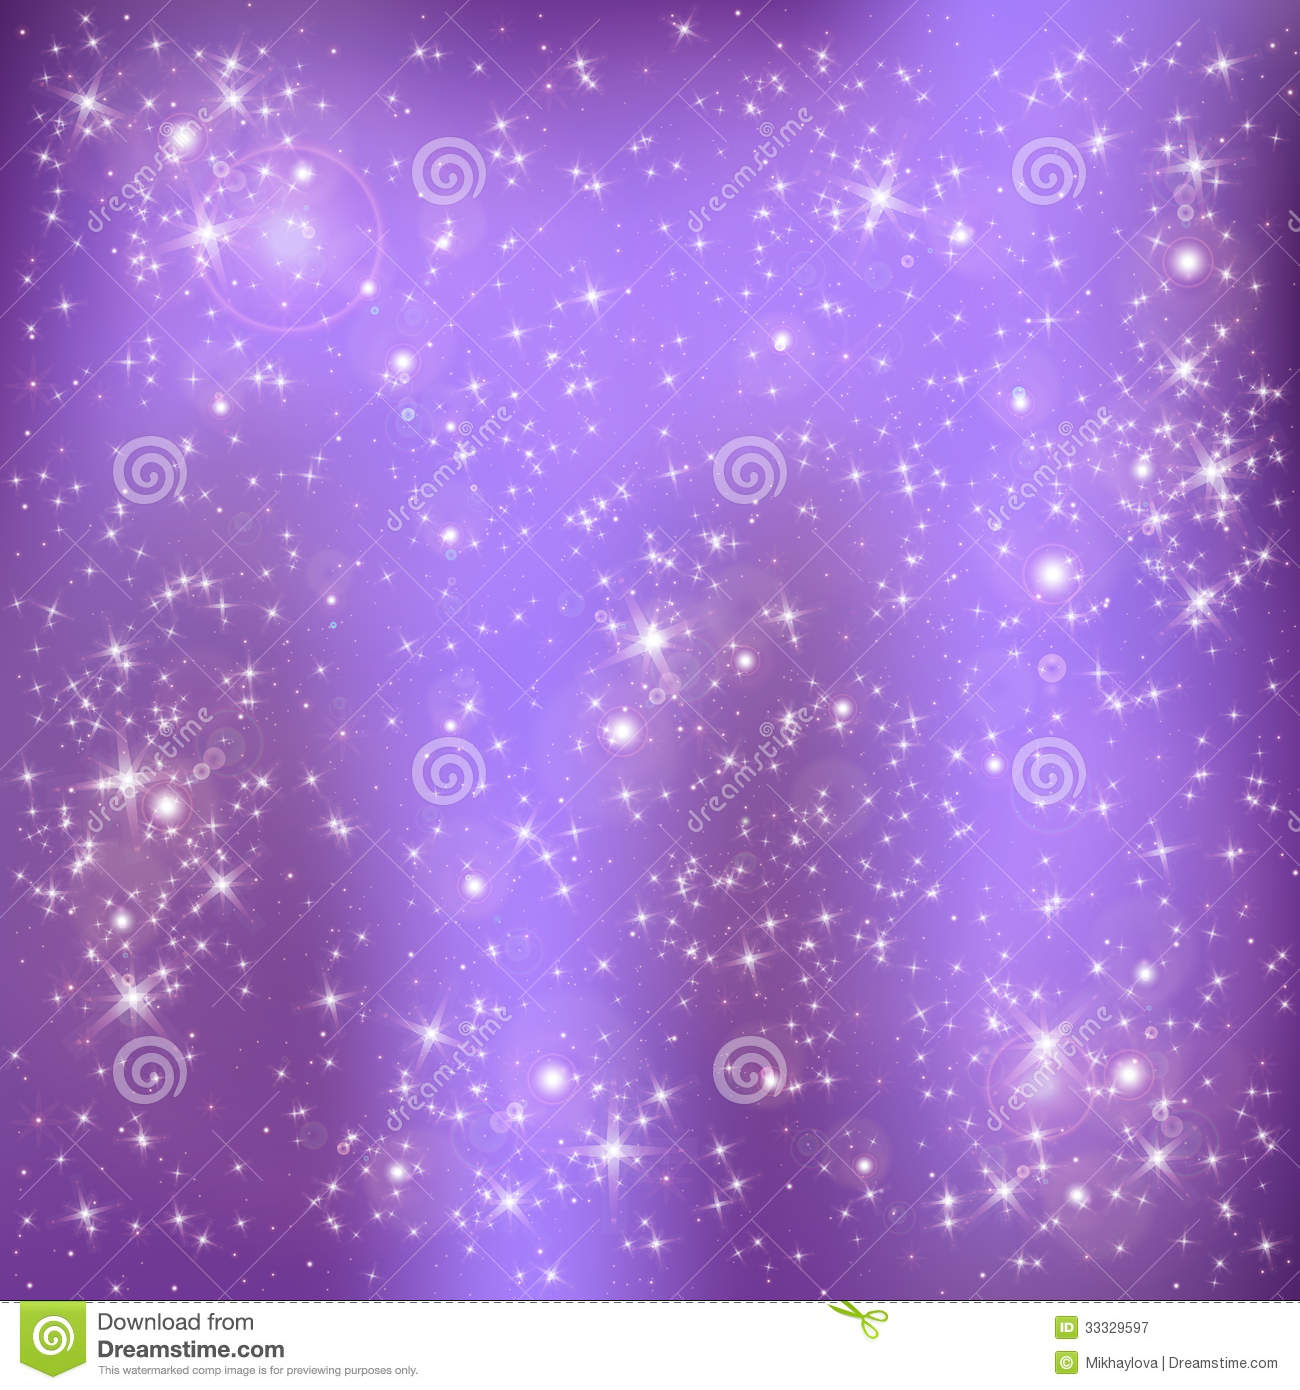 Lilac Tree Information Stars On A Lilac Background Stock Vector Illustration Of